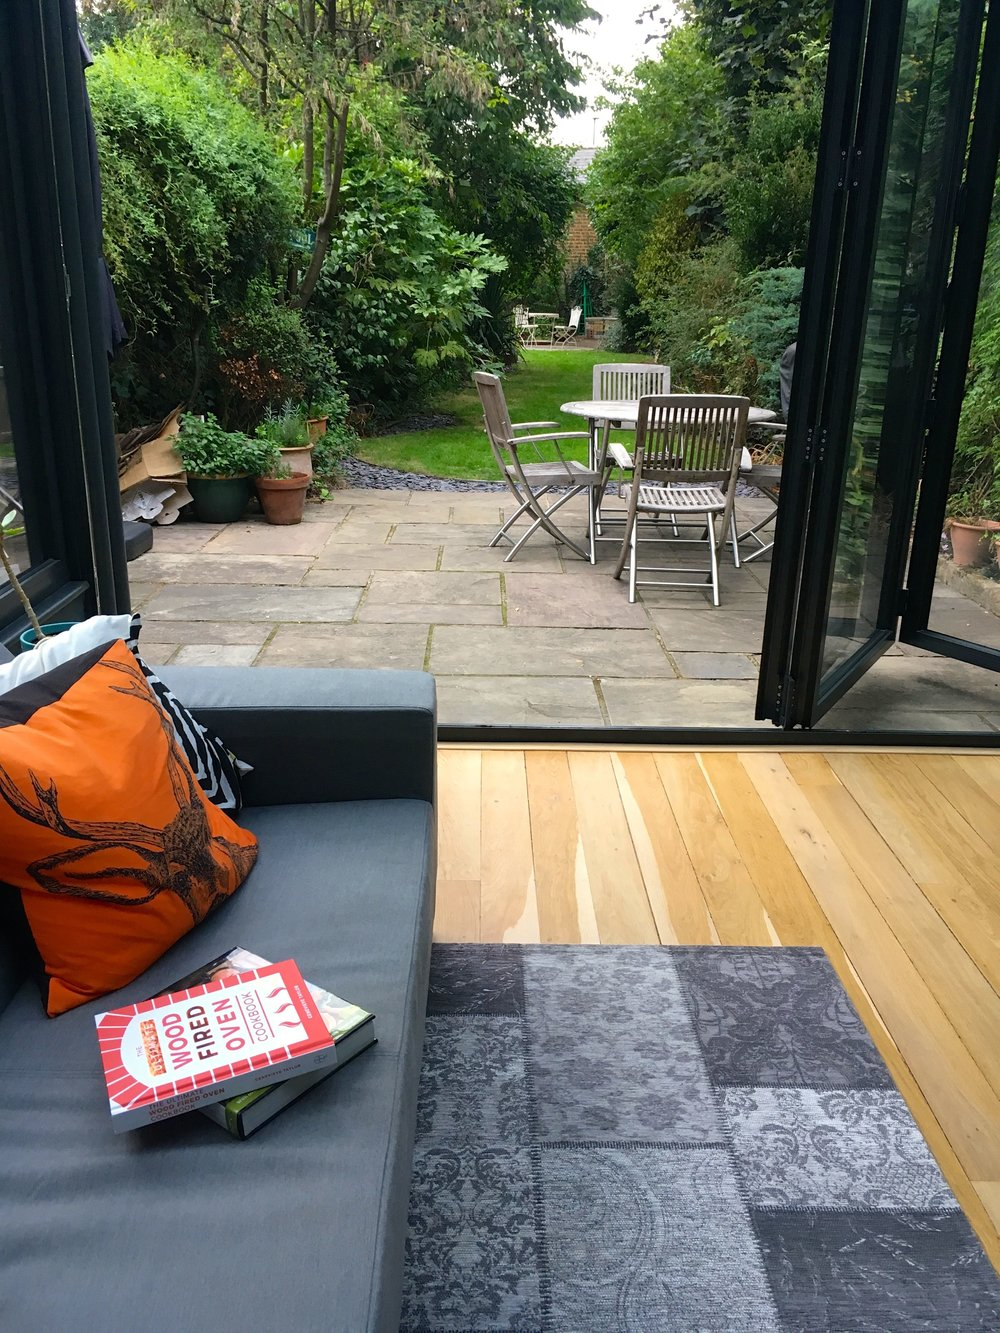 external bifold doors and view to the garden